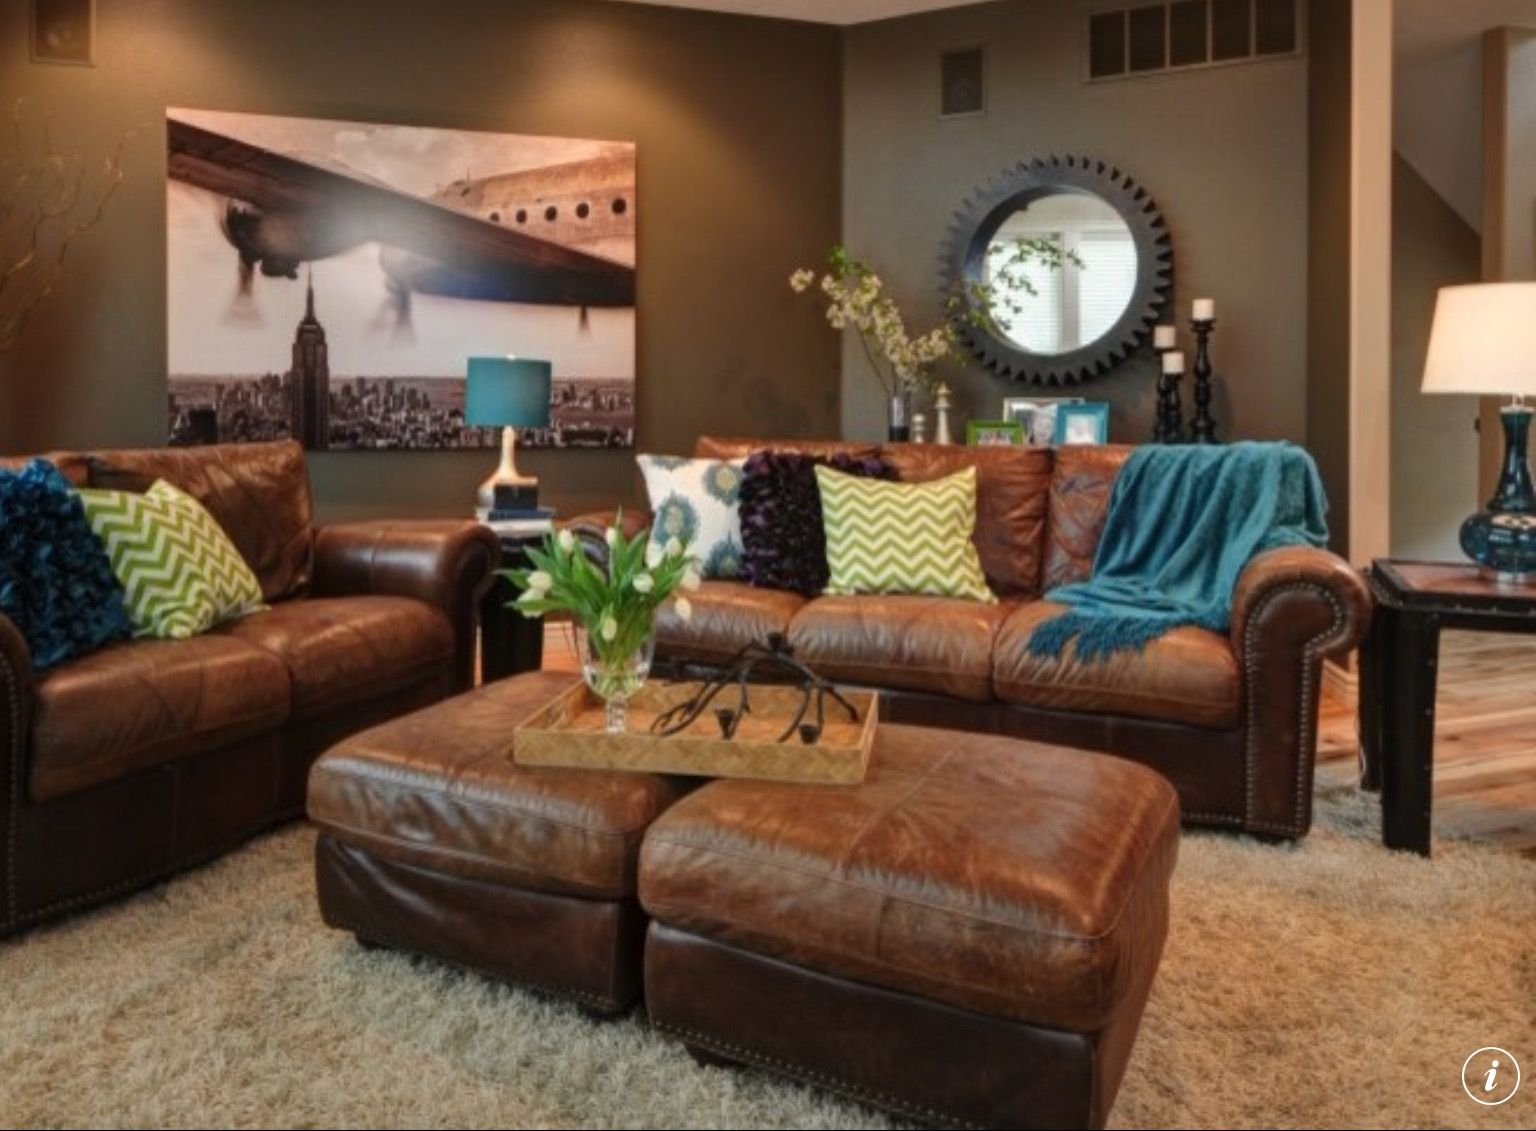 Love The Color Scheme In This Room, Specially The Sofas!